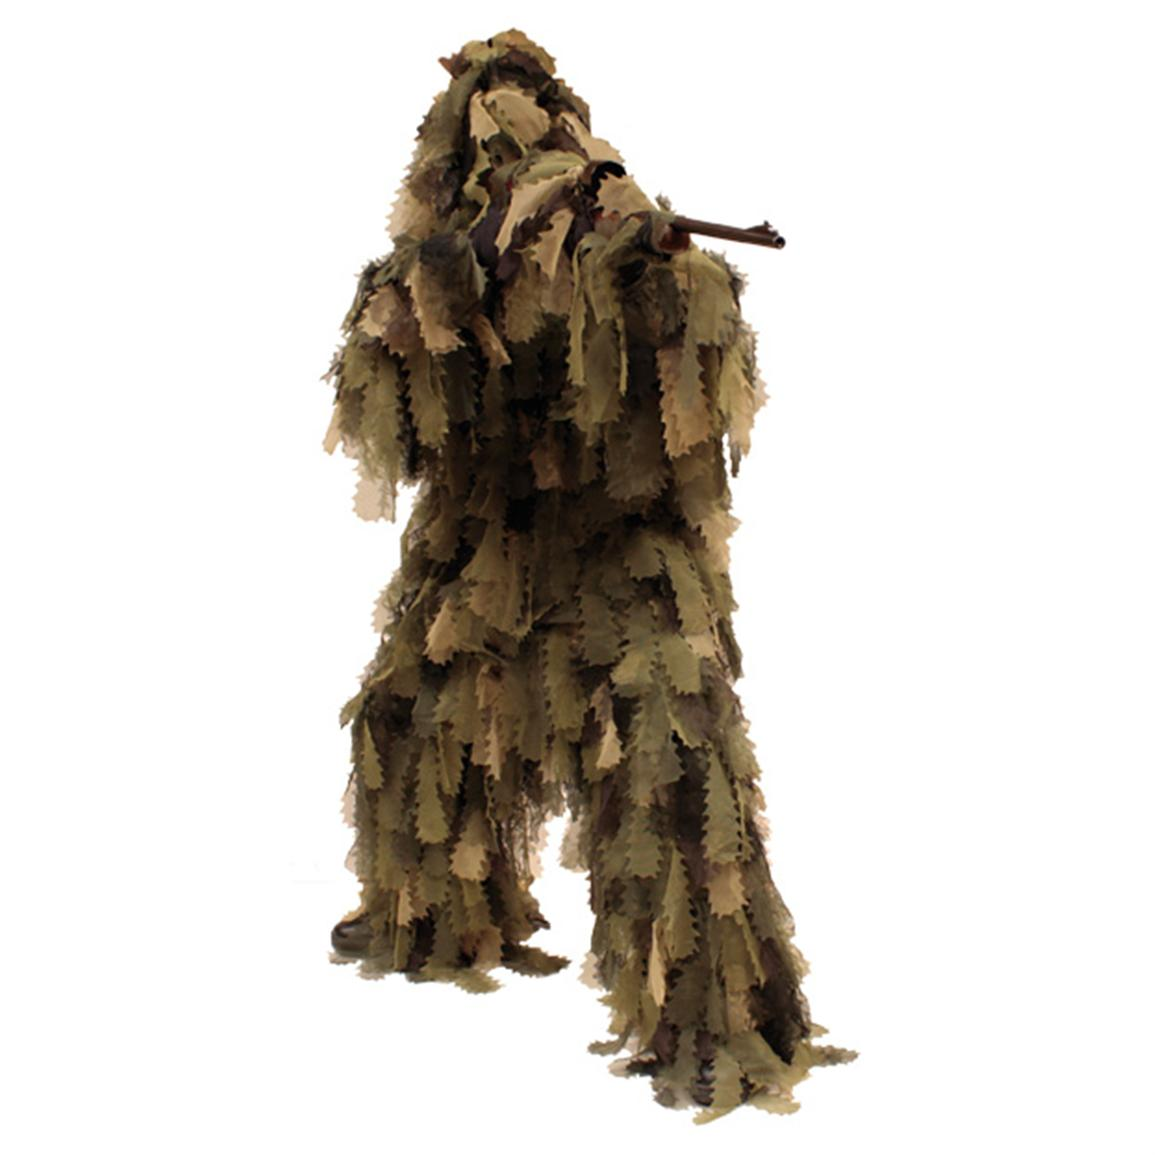 Red Rock Outdoor Gear™ Big Game Ghillie Suit, Backwoods